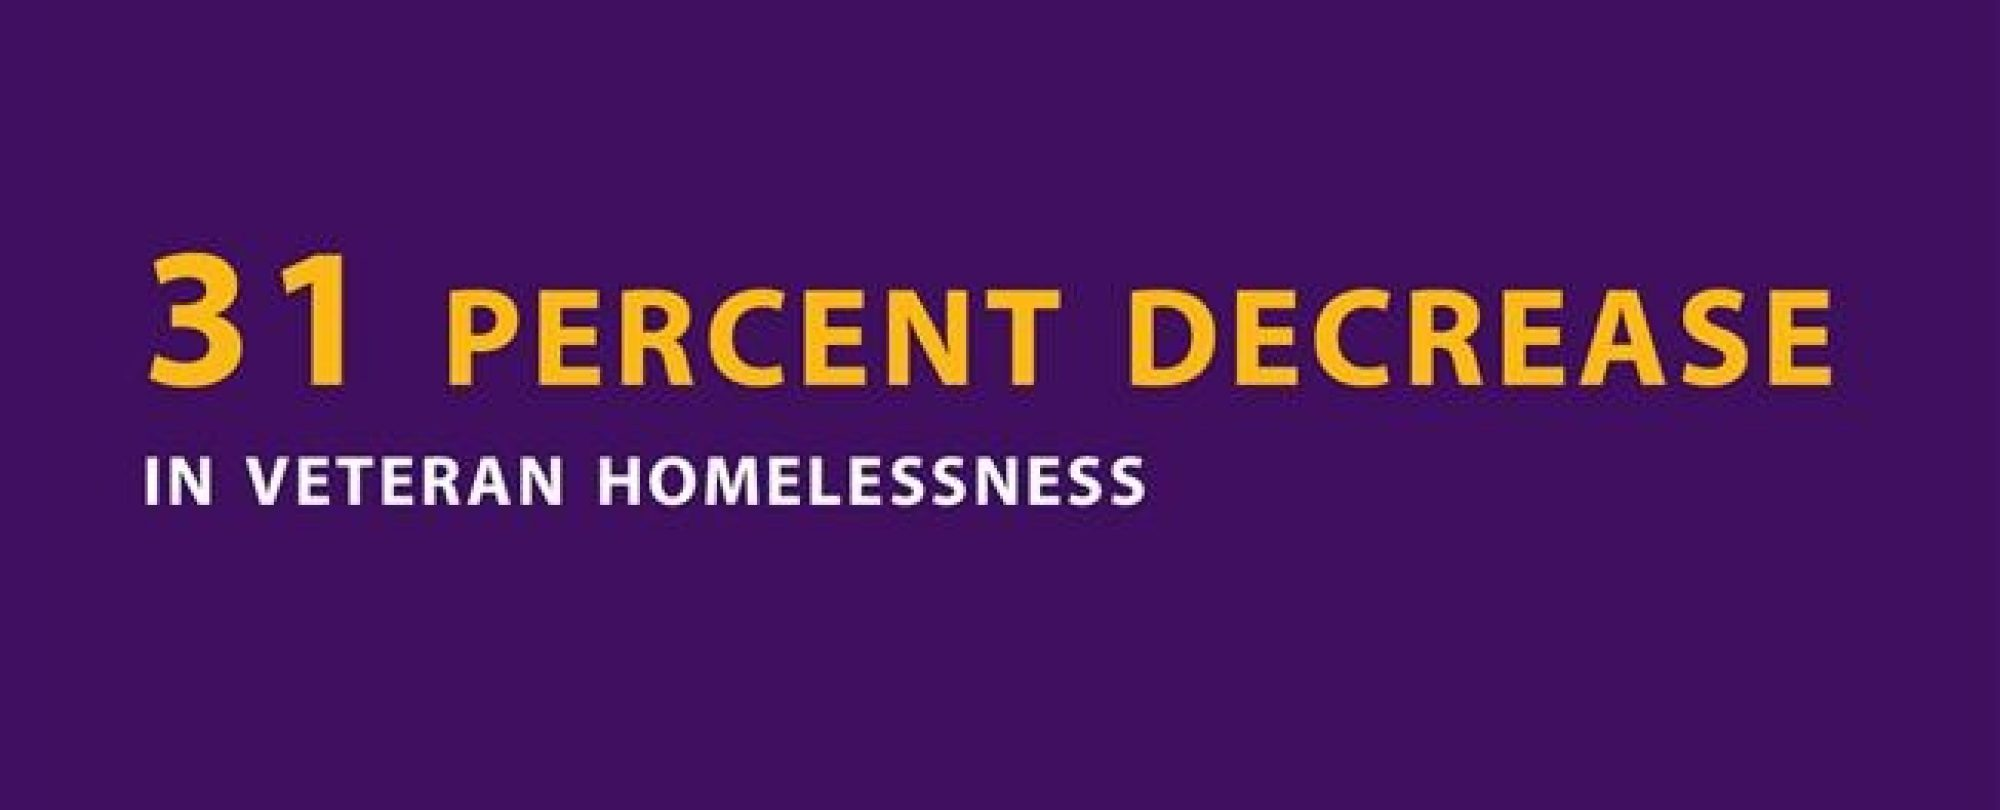 31 percent decrease in veteran homelessness.